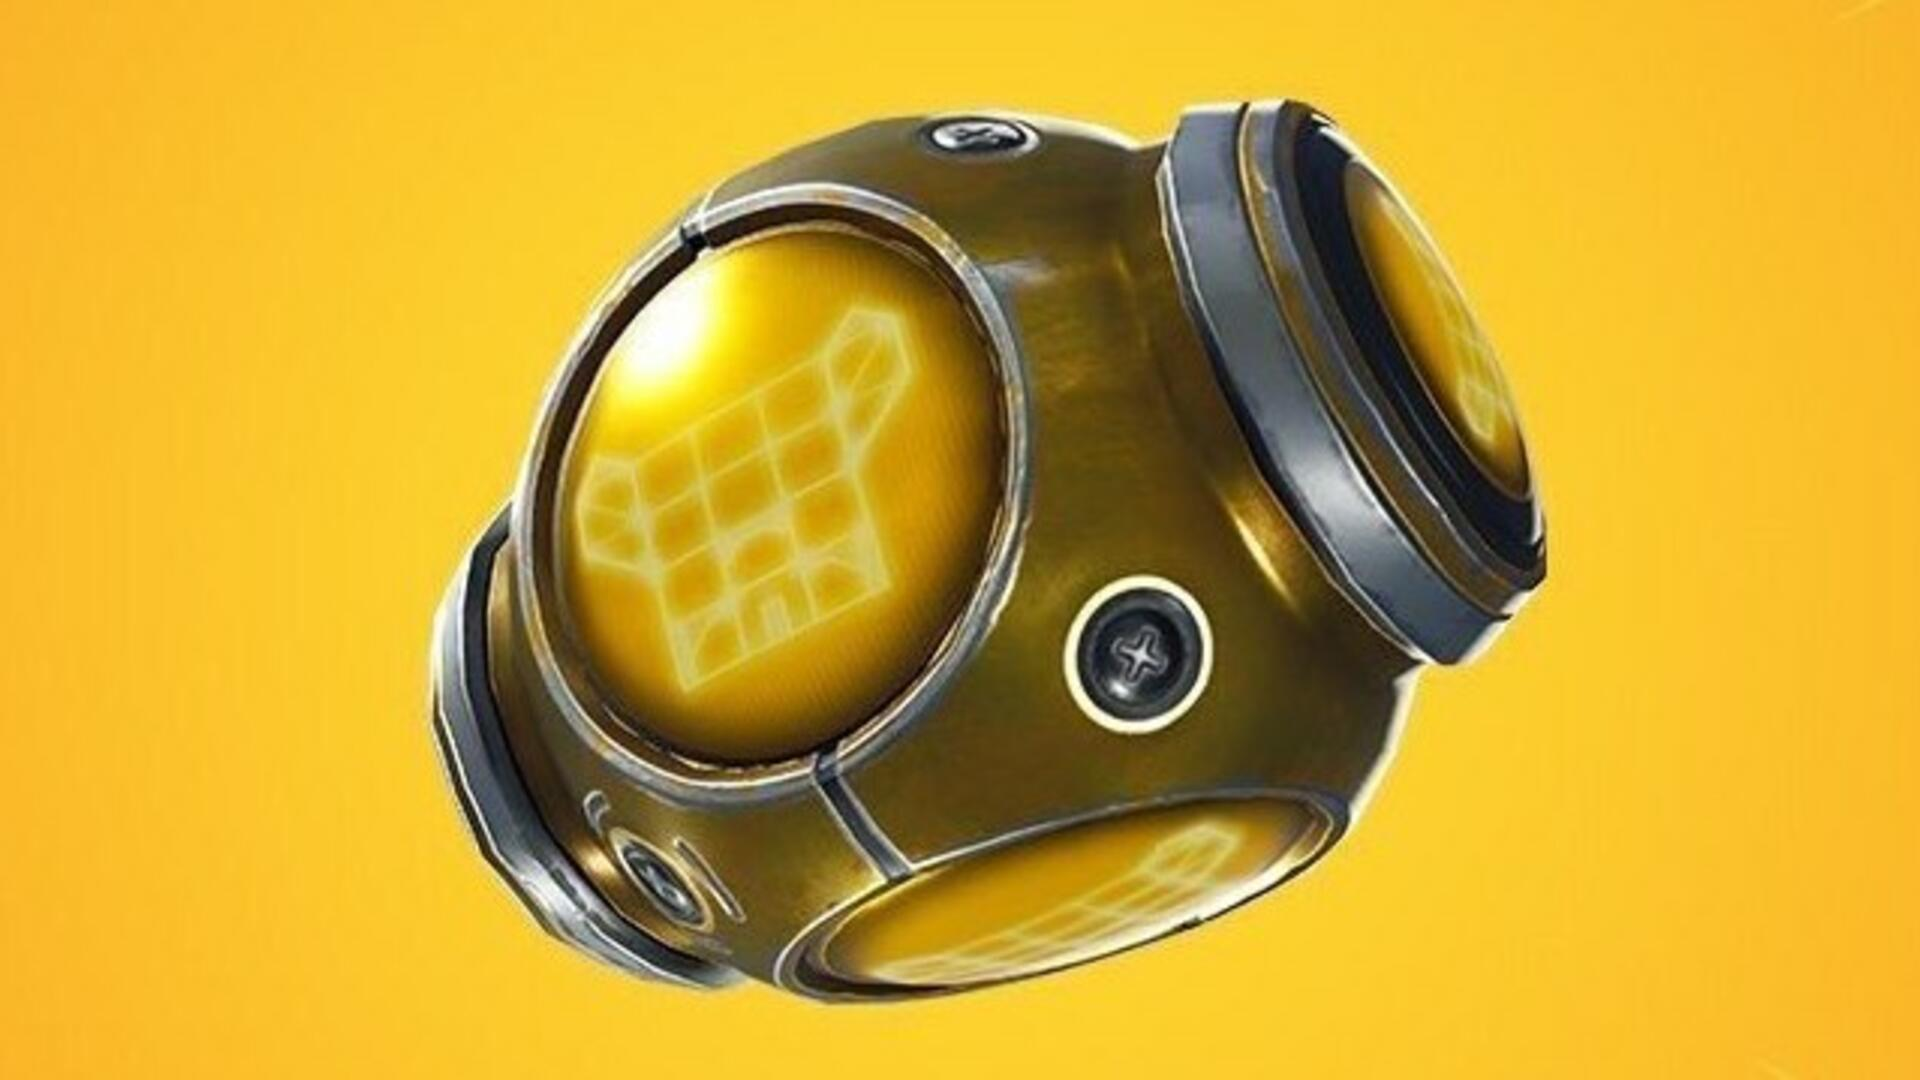 Fortnite's New Port-a-Fortress Item is Coming Soon to Battle Royale